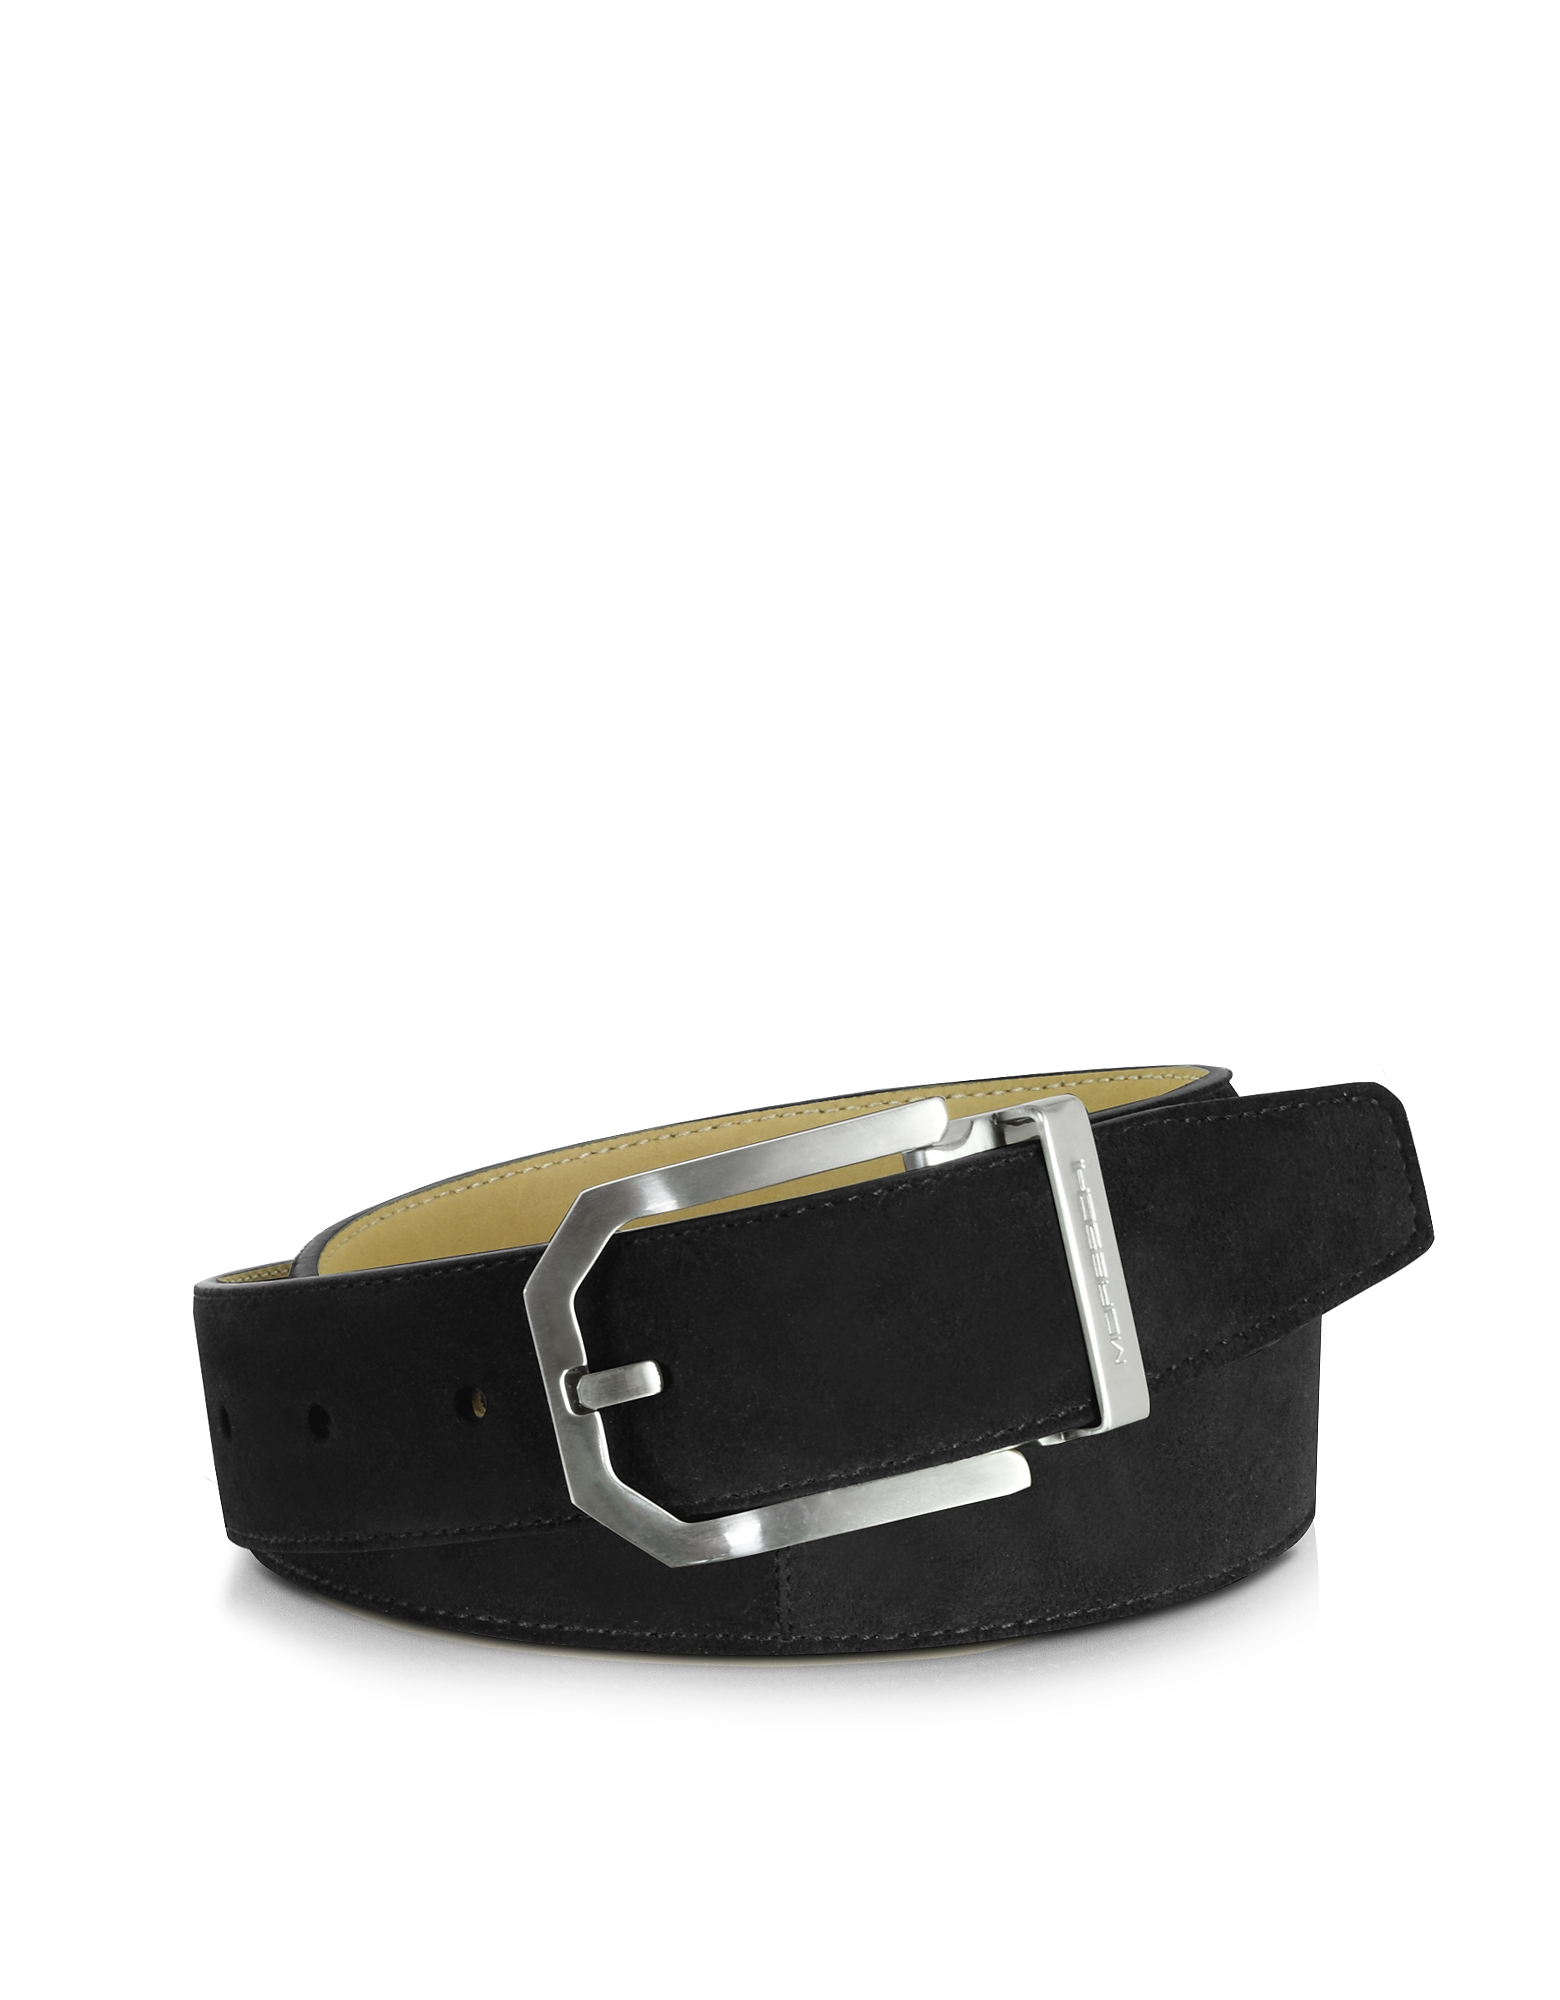 Moreschi Men's Belts, Monterey Black Suede Belt